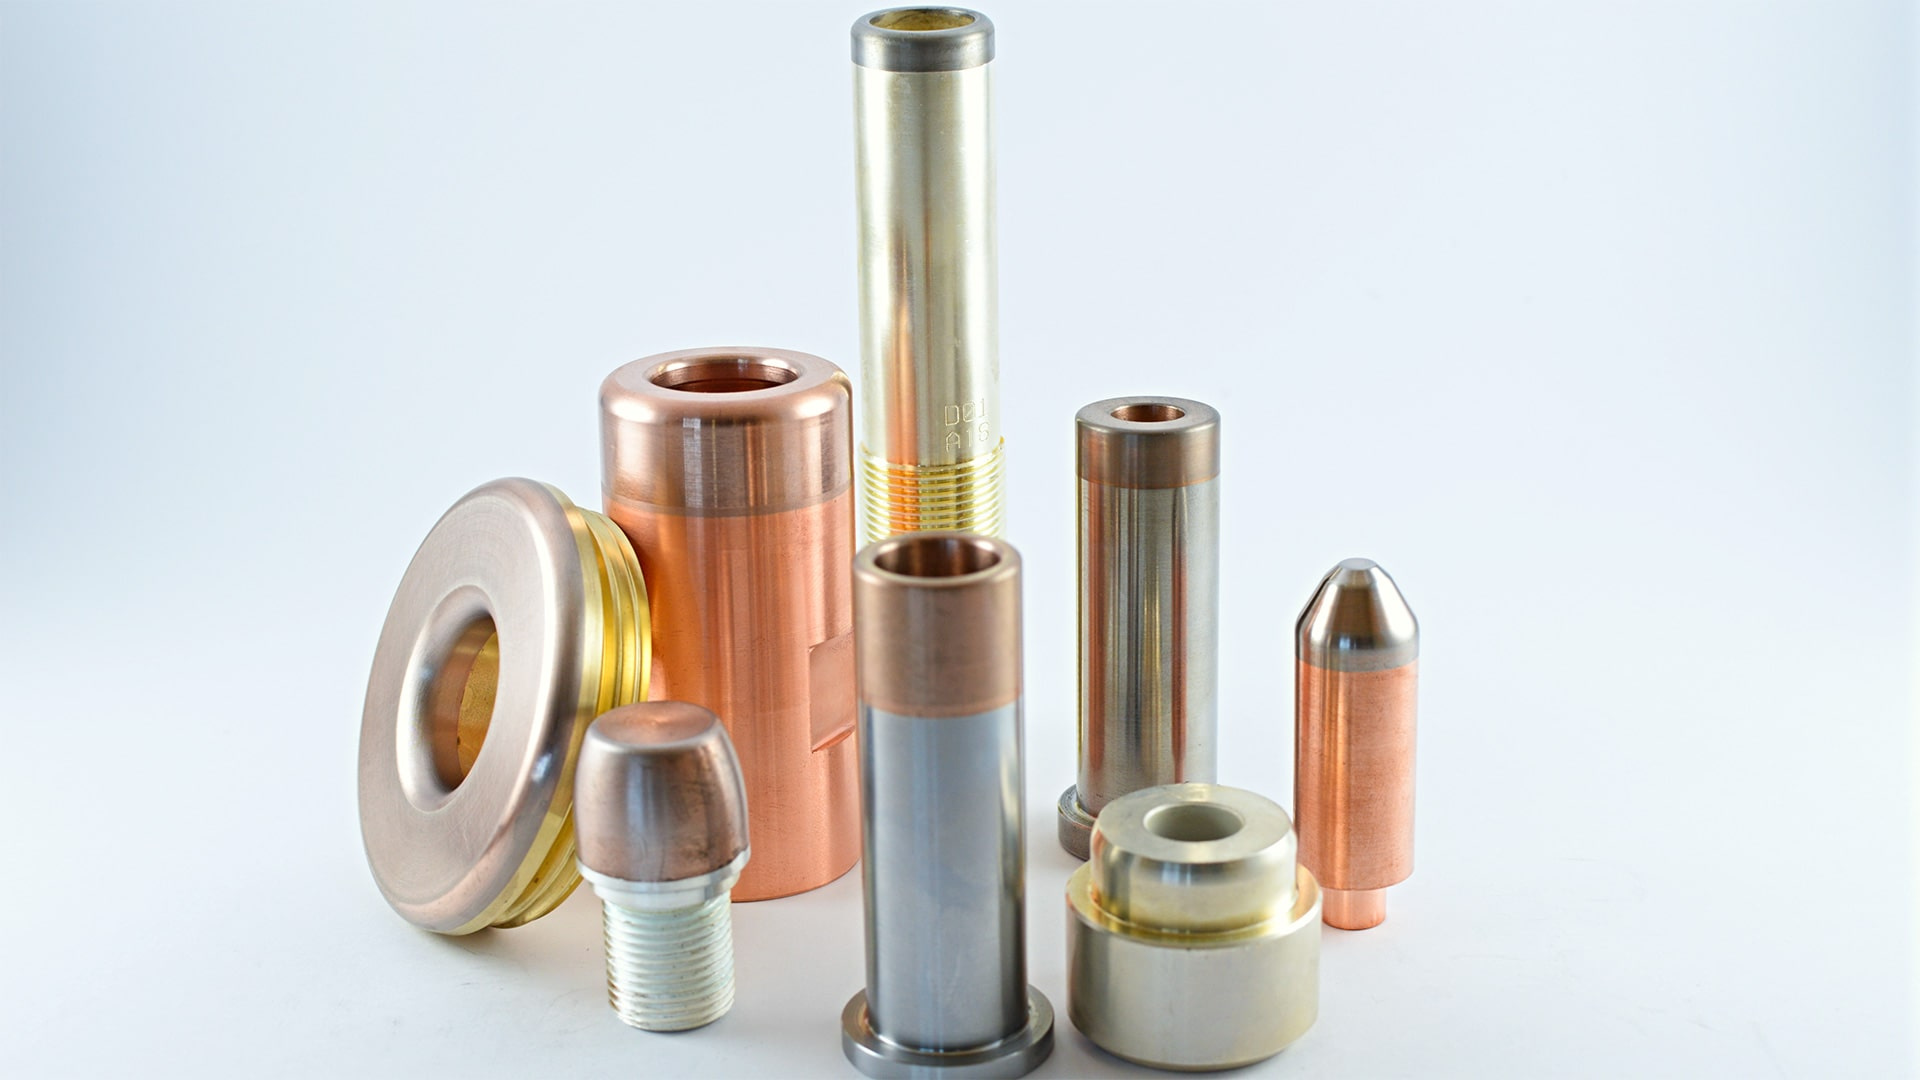 Copper and tungsten-copper electrical contacts